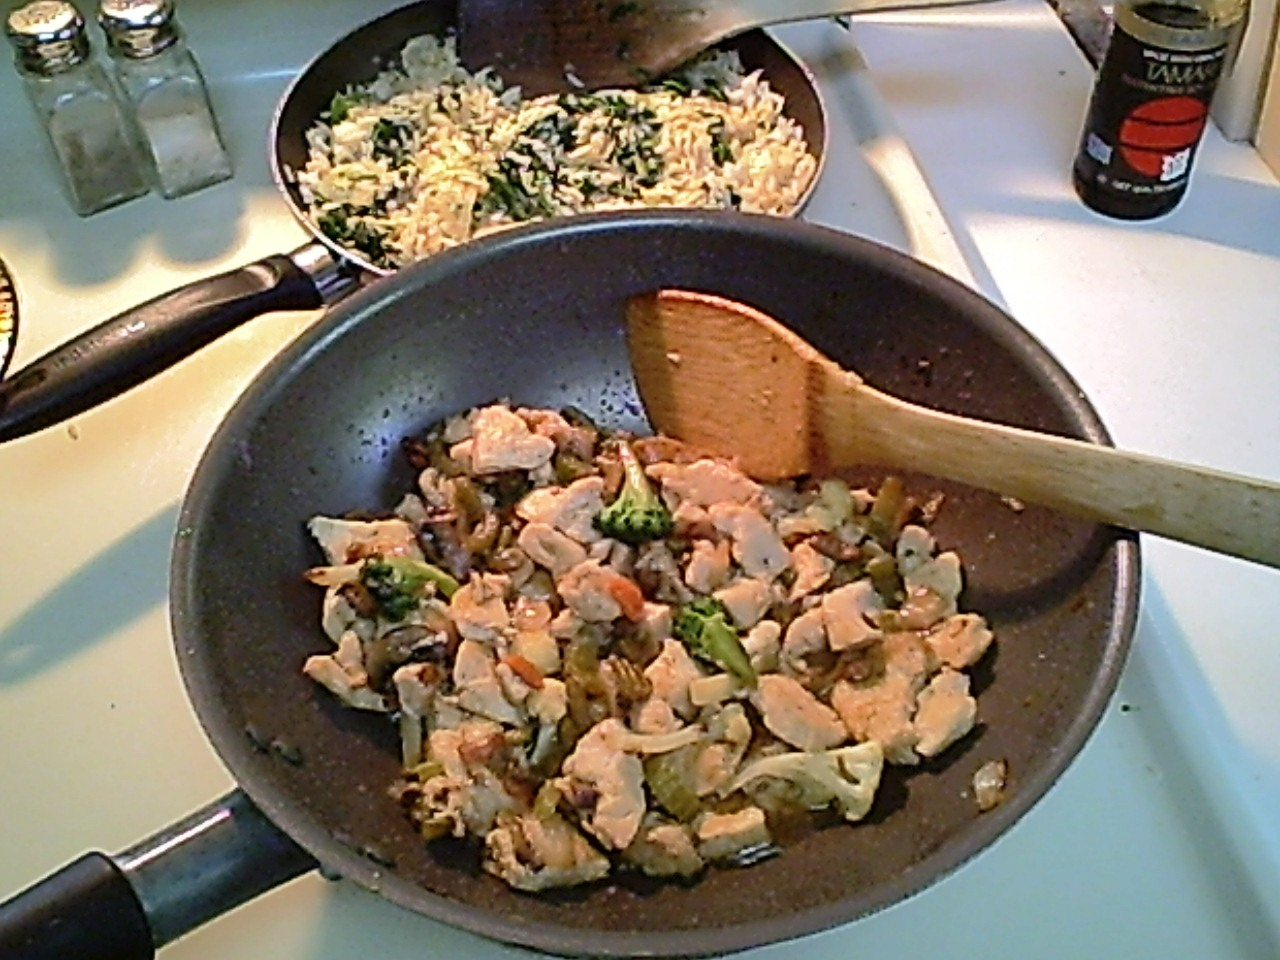 Gluten-Free Chicken Stir-Fry with Celery and Onion Is a Quick Meal to Make